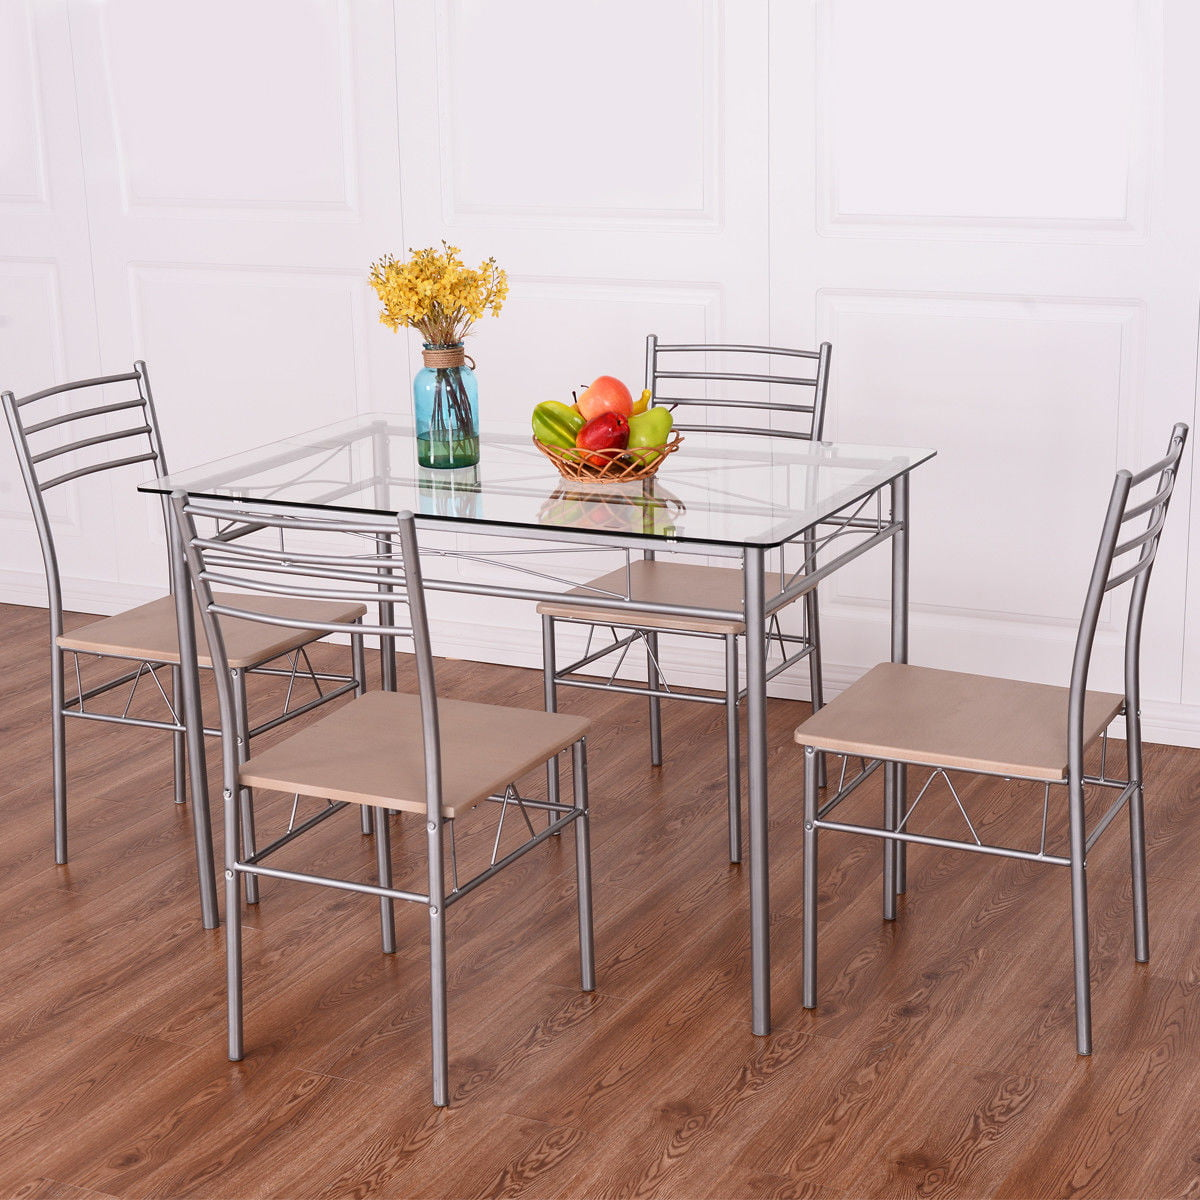 Costway 5 Piece Dining Room Set Table And 4 Chairs Glass Top Kitchen Breakfast Furniture by Costway